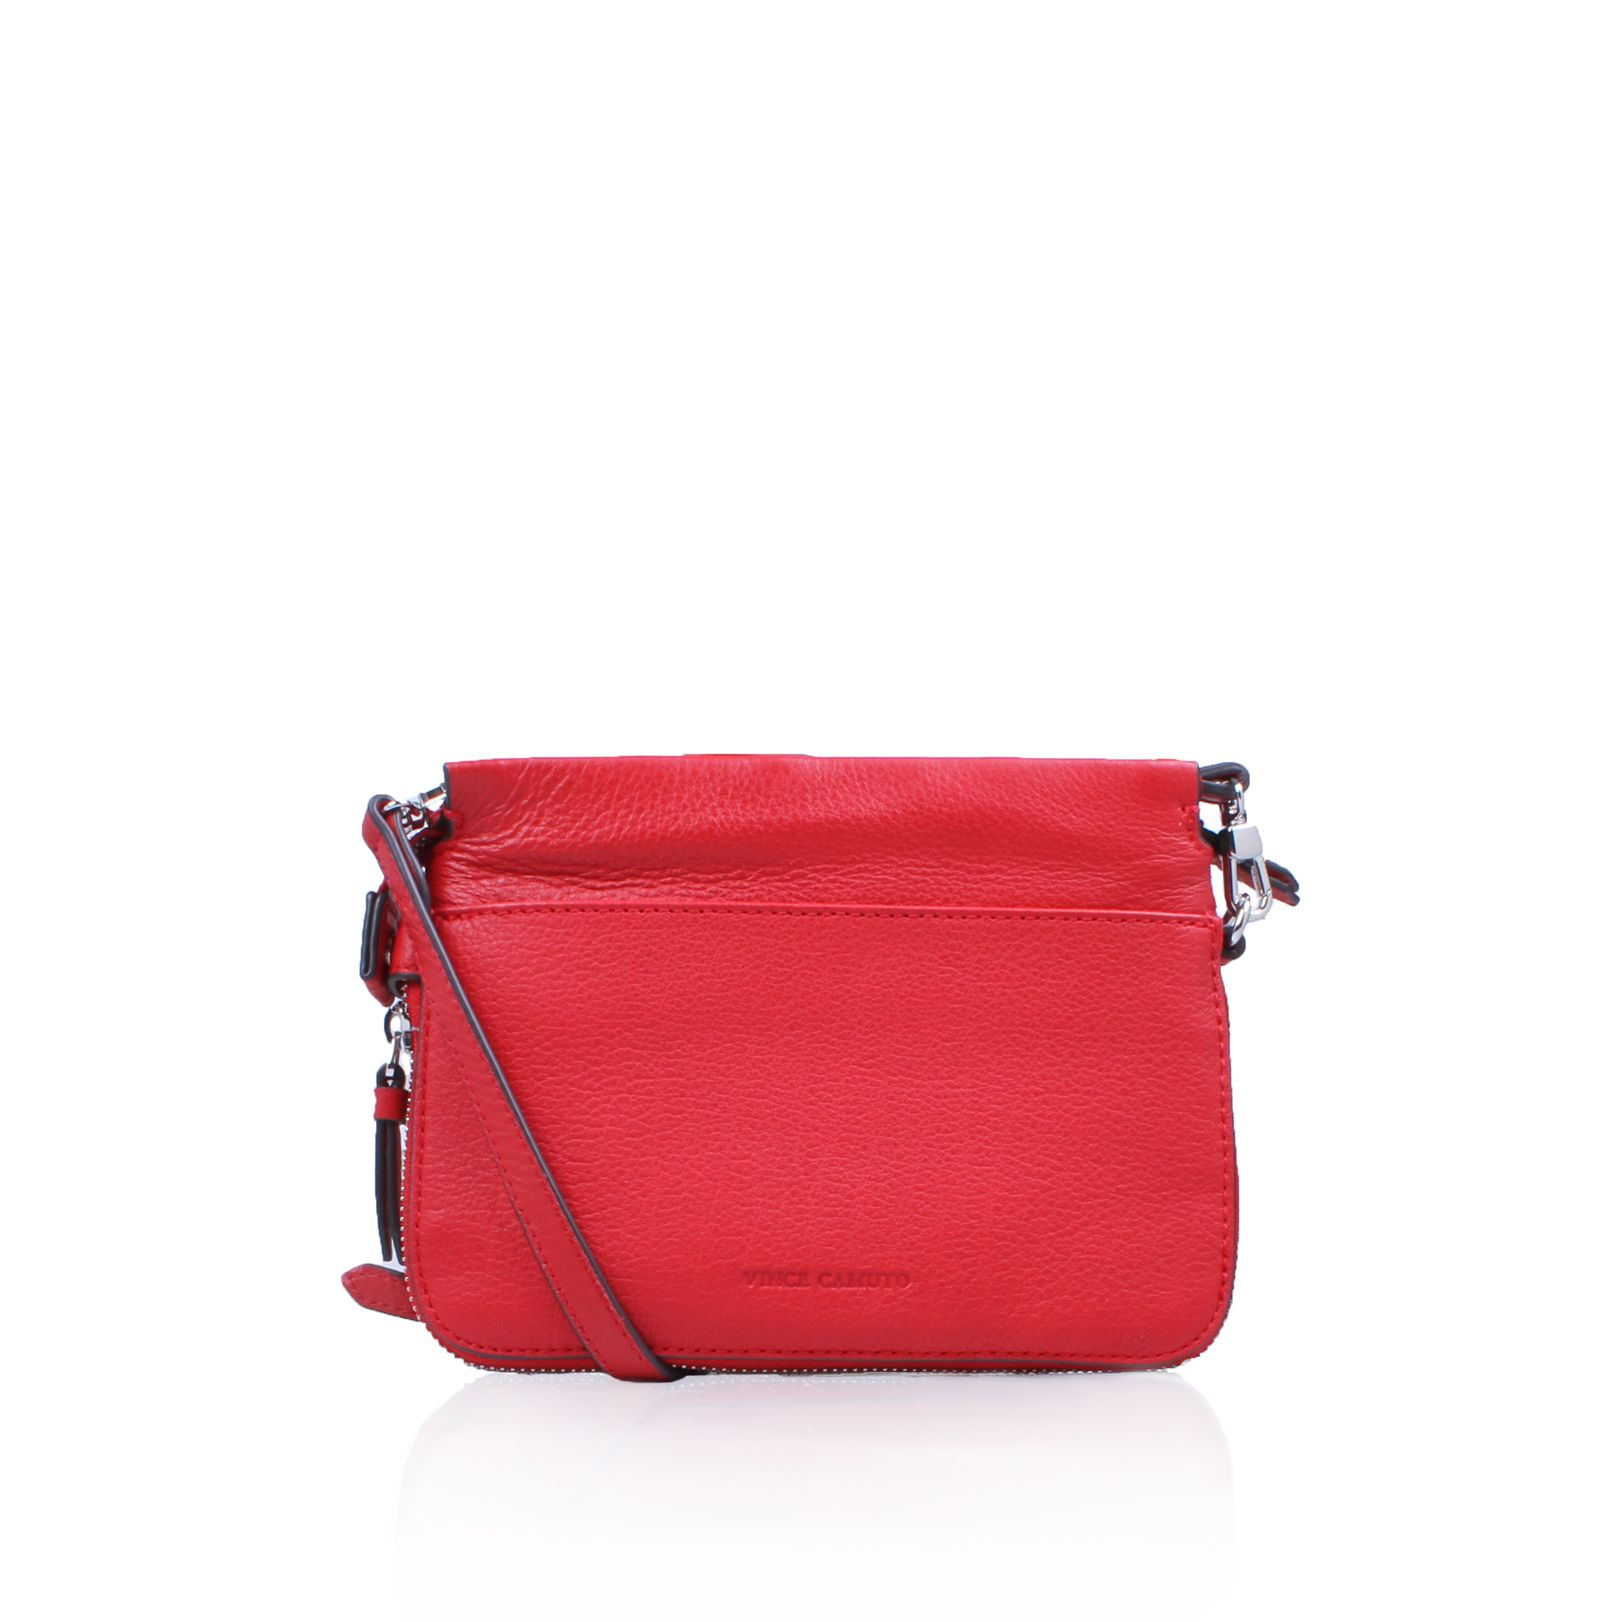 Vince Camuto Edsel Cross Body Bags, Red